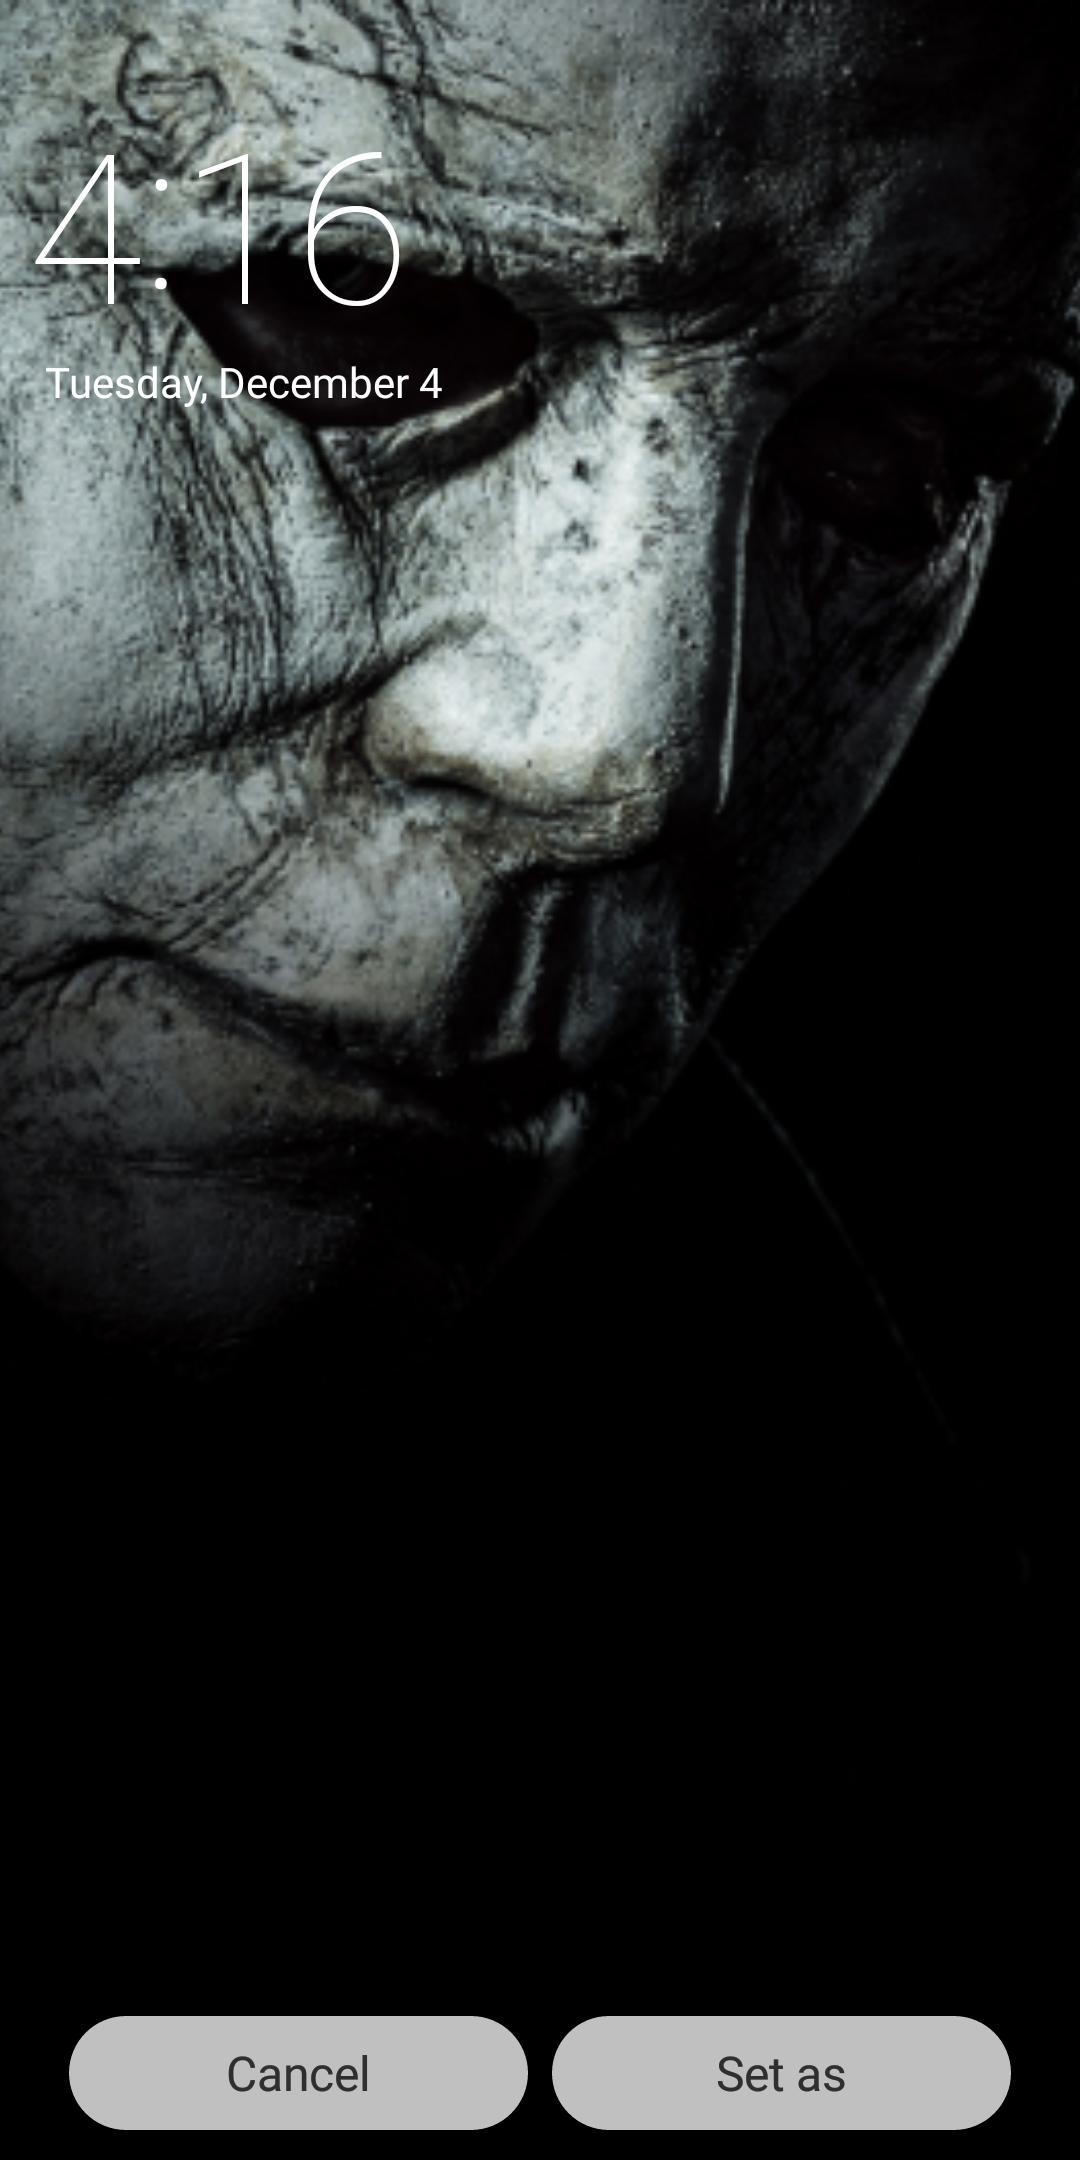 Scary Black Wallpaper For Android Apk Download